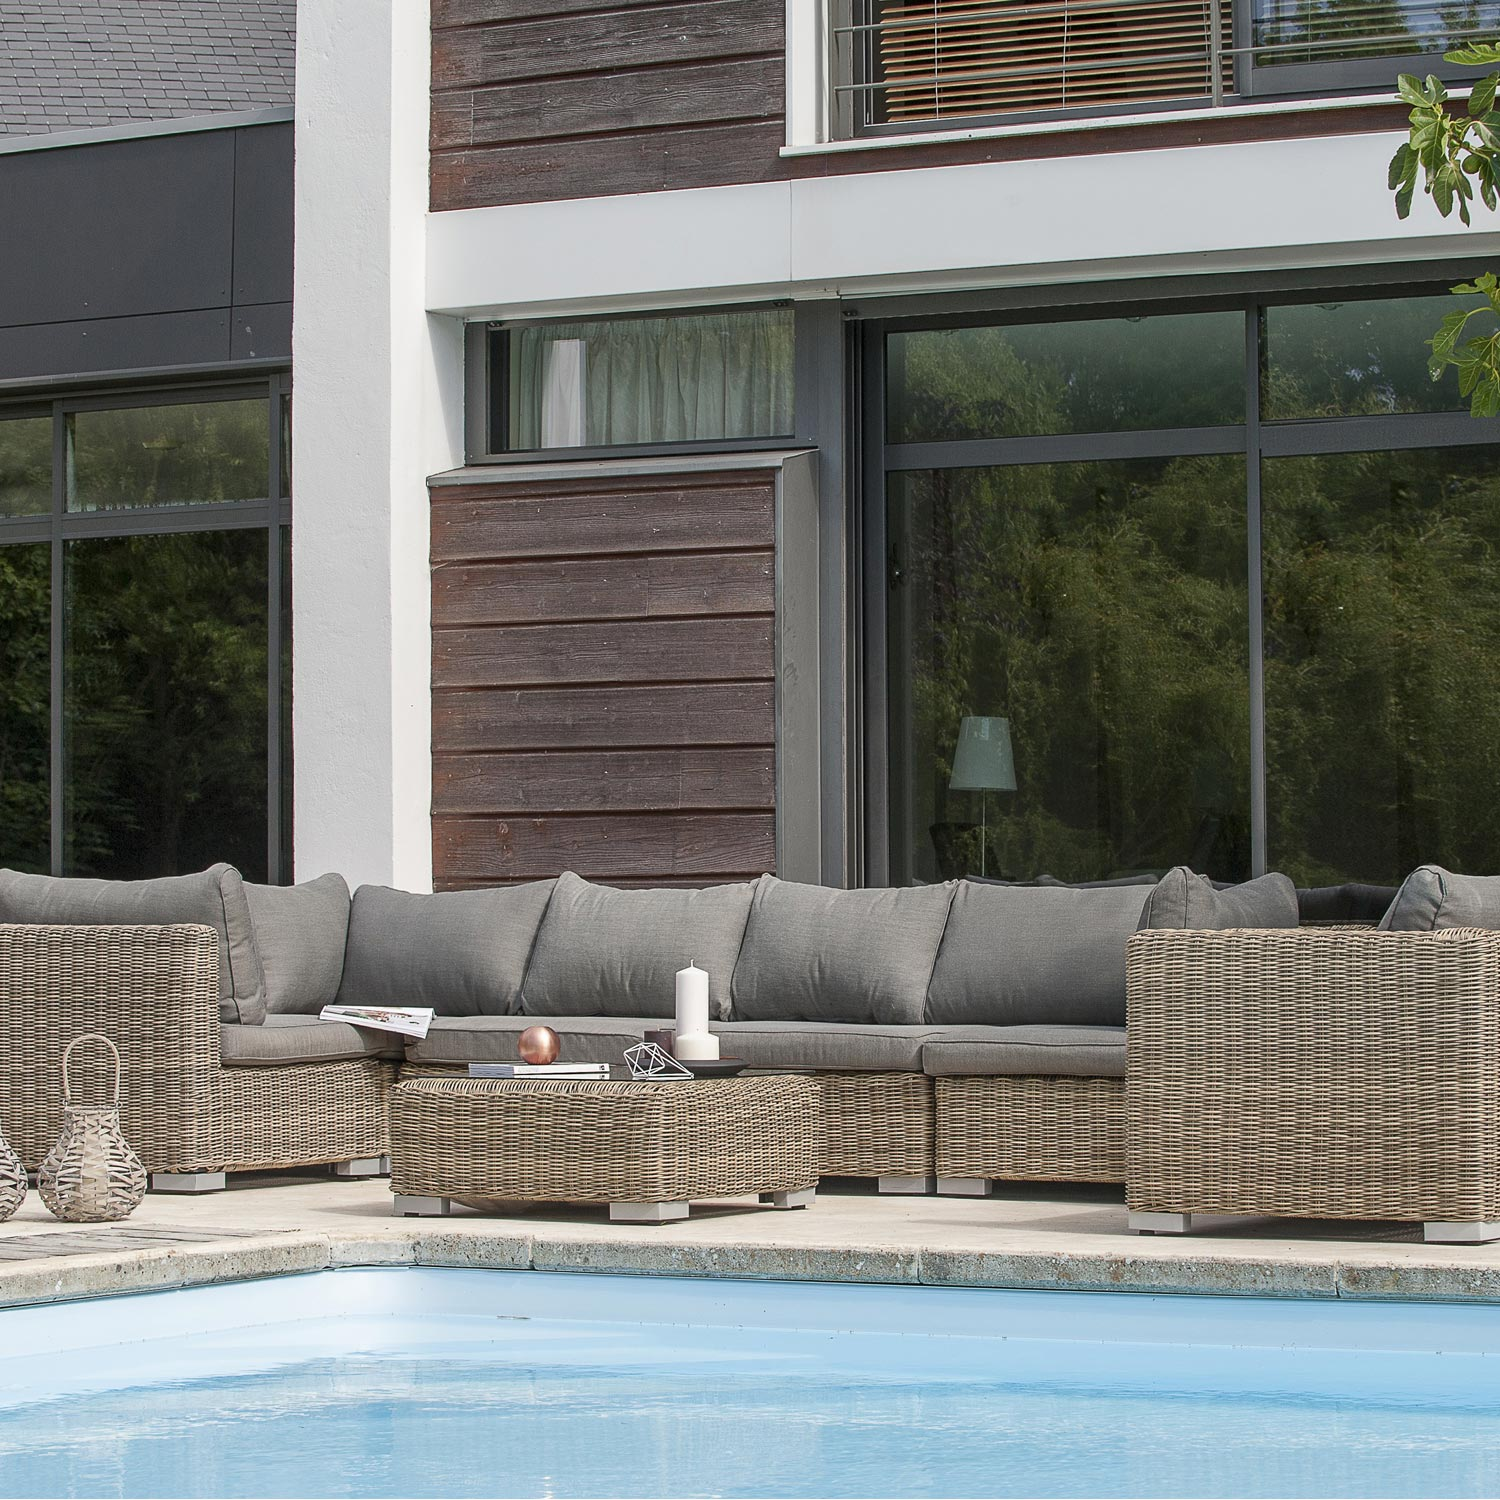 Salon jardin montmartre 1 fauteuil 3modules d 39 angle 2 for Balancines para jardin leroy merlin